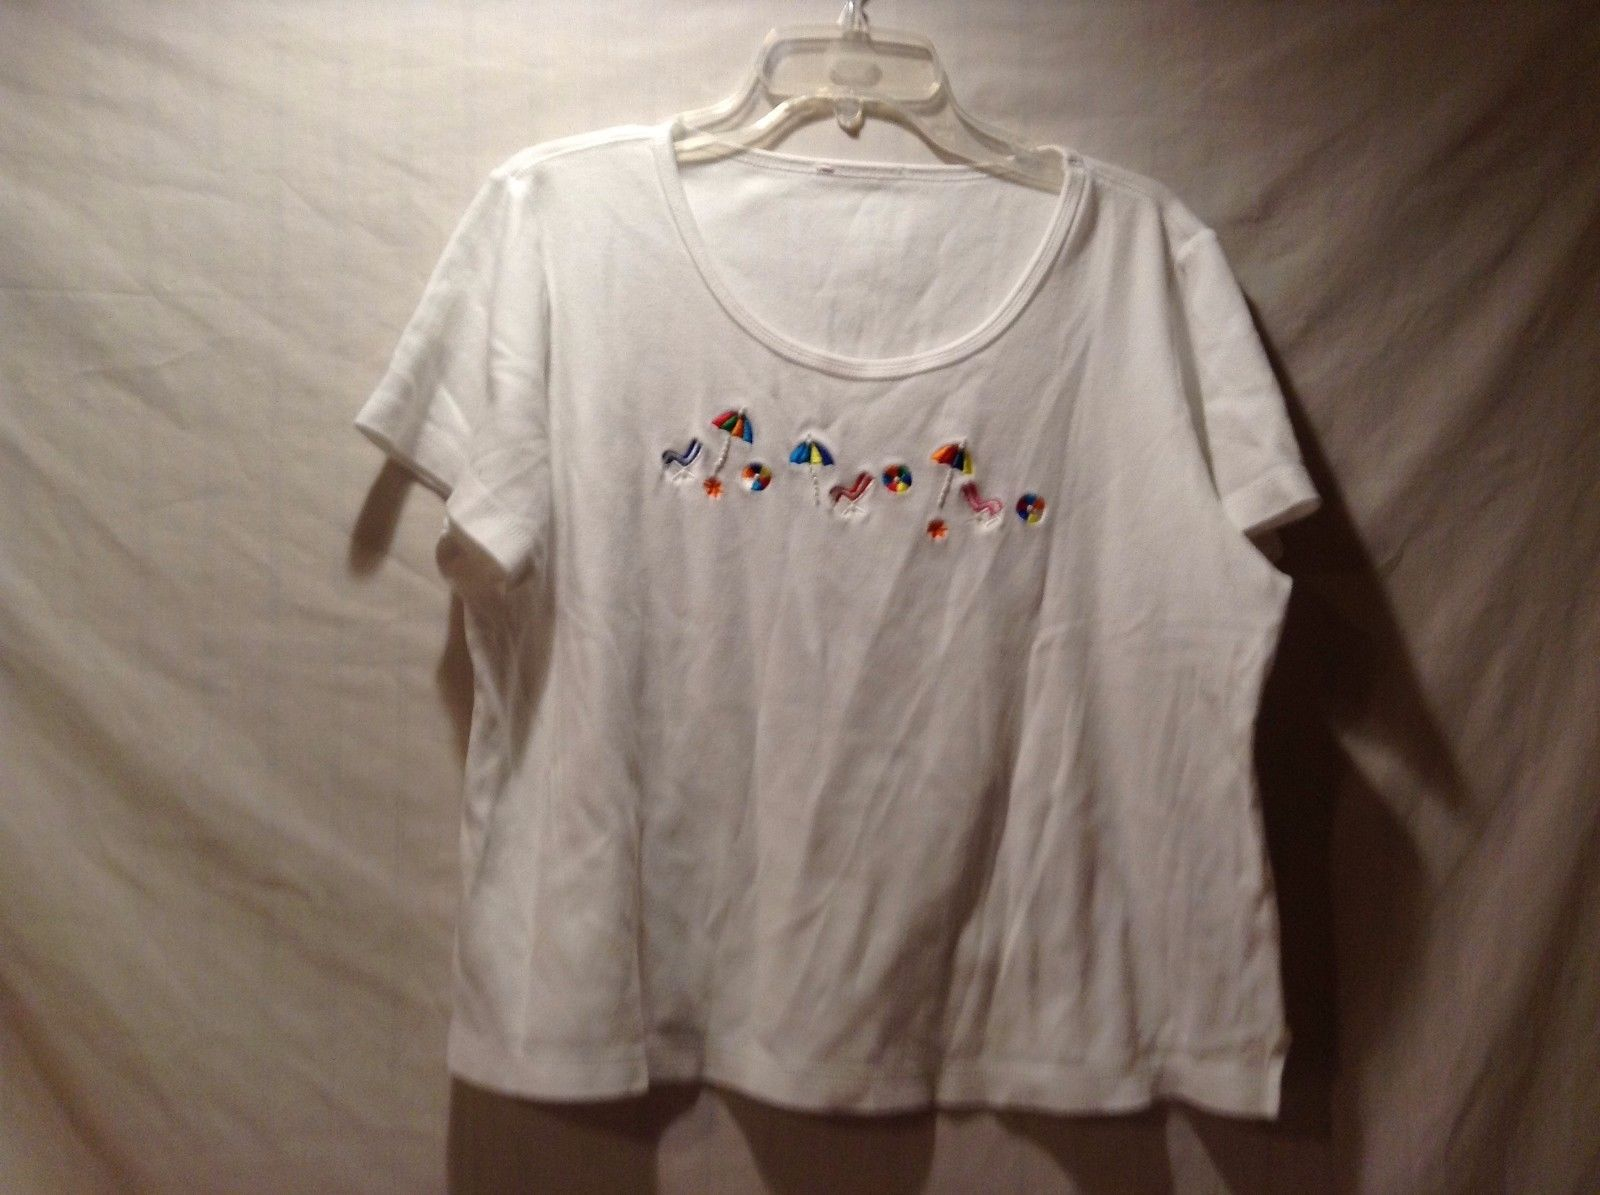 Used Good Condition White Beach Themed T-Shirt